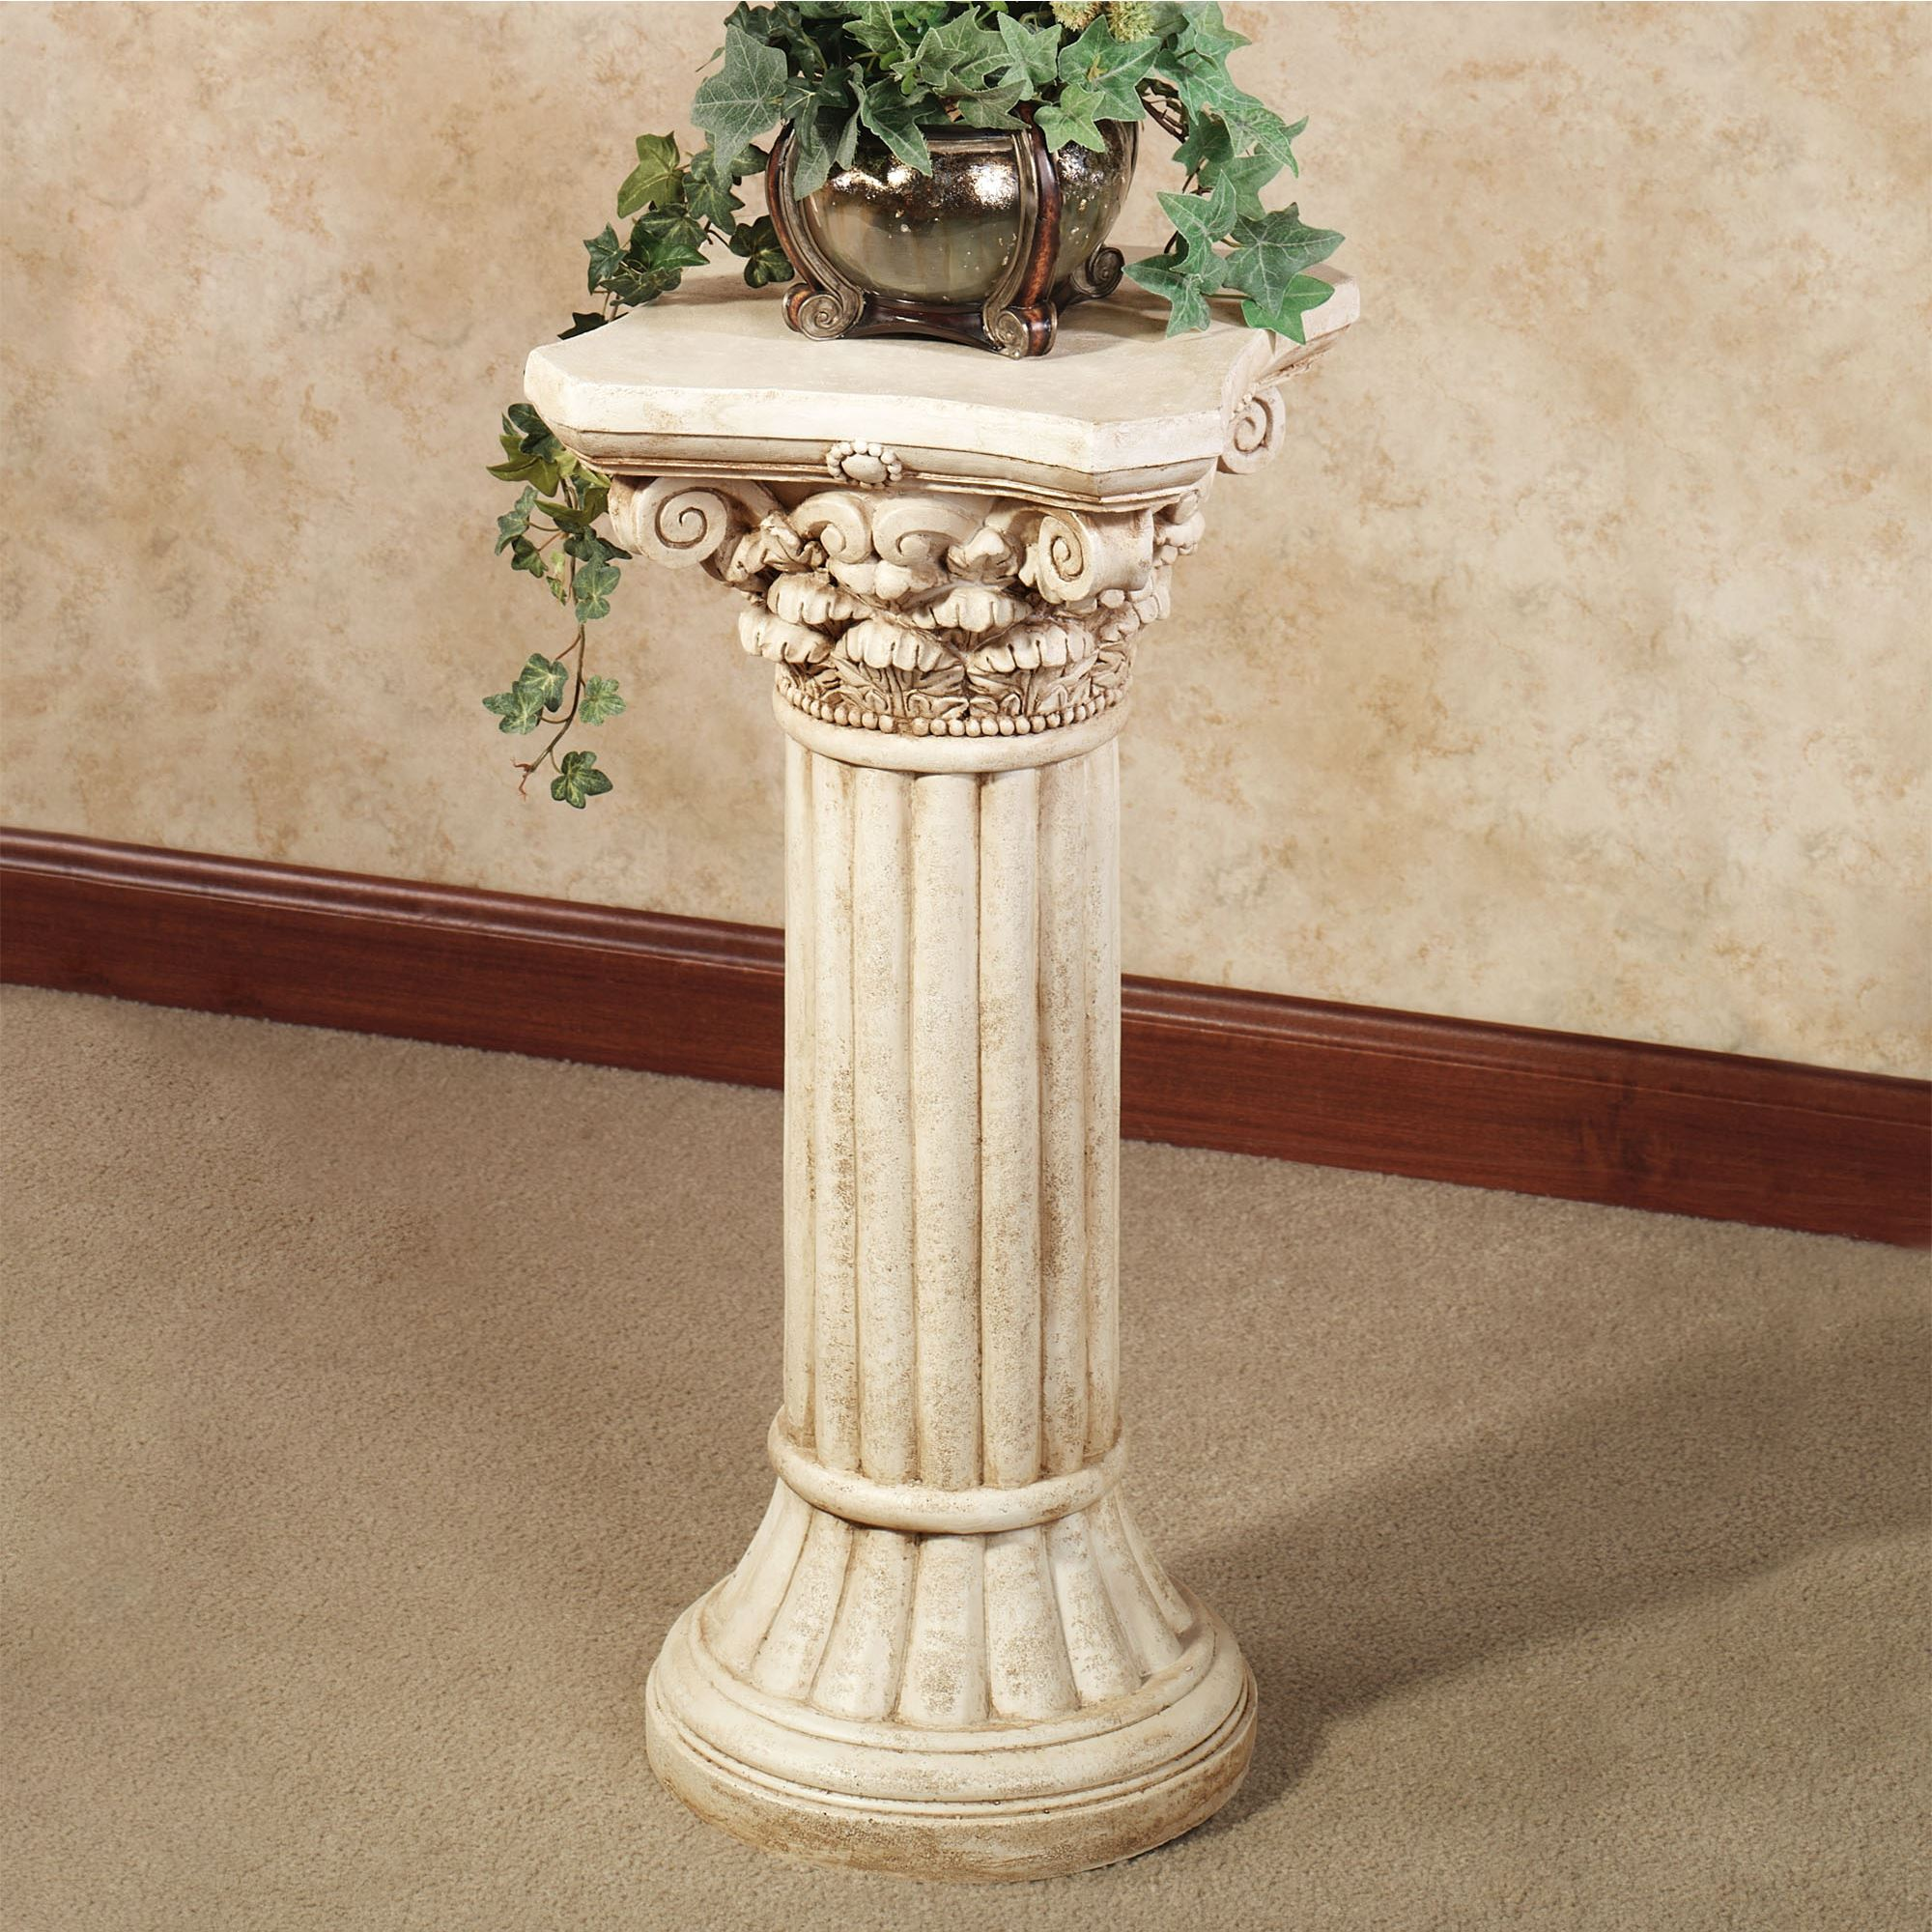 Corinthian indoor outdoor display column pedestal - Column pedestal plant stand ...